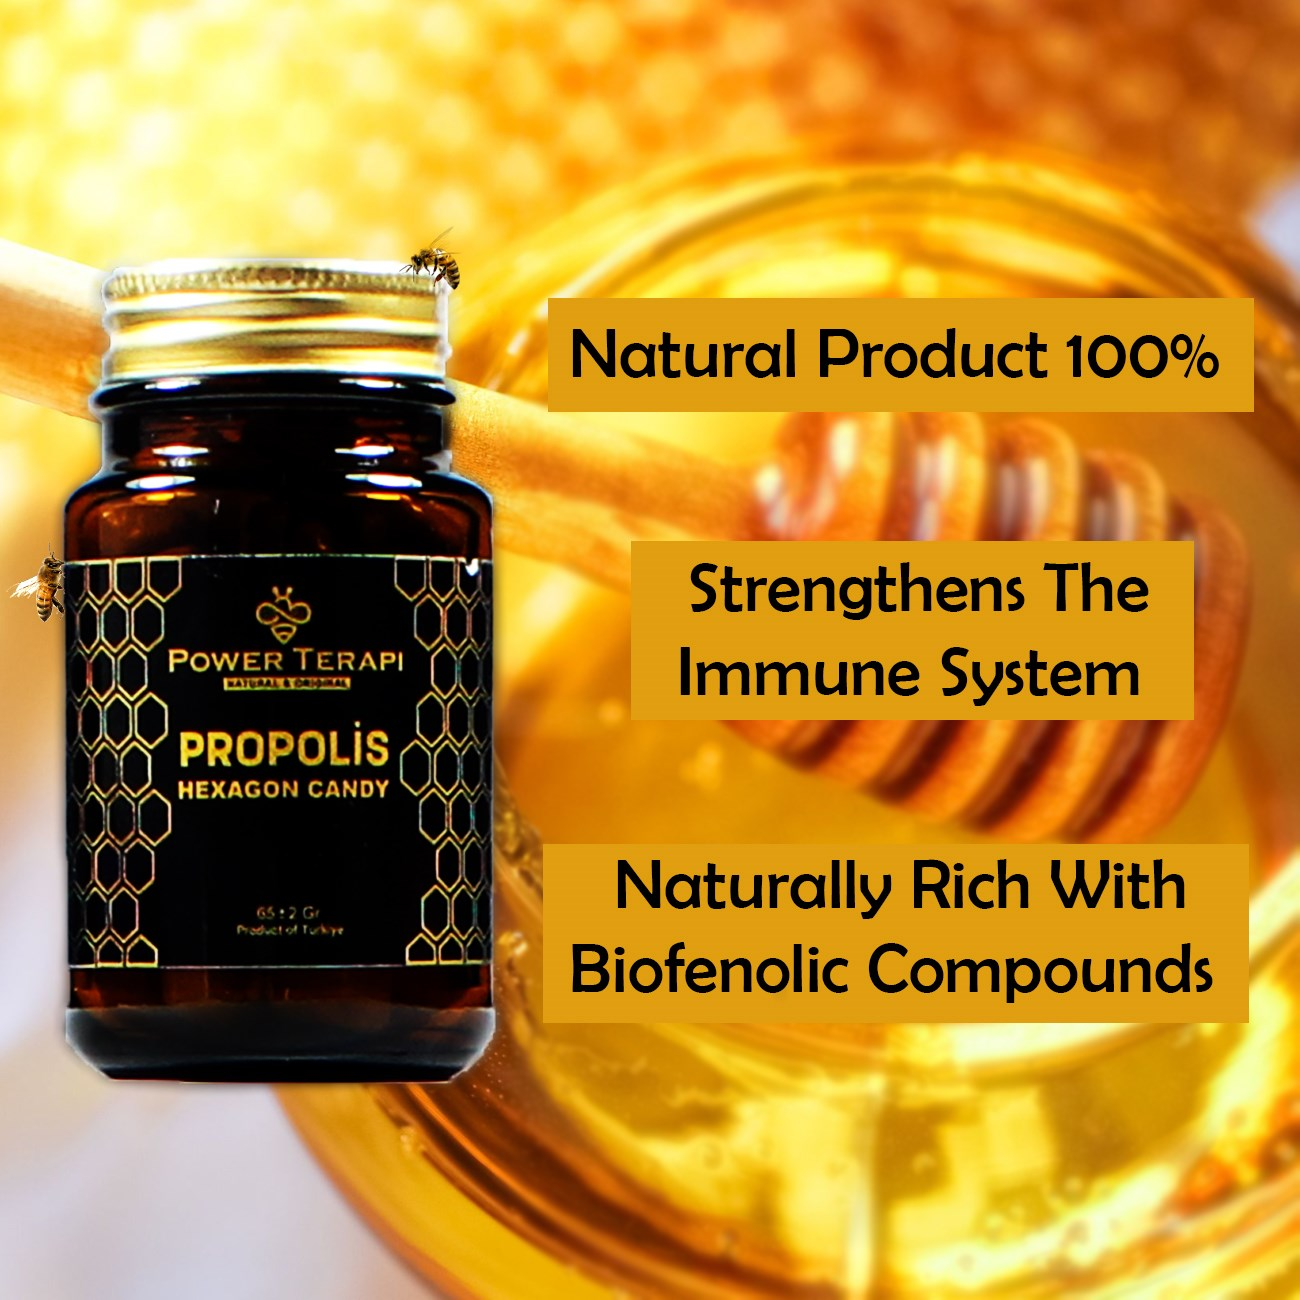 Propolis Hexagon Candy Strengthens The Immune System Natural Herbal Product Honey Health